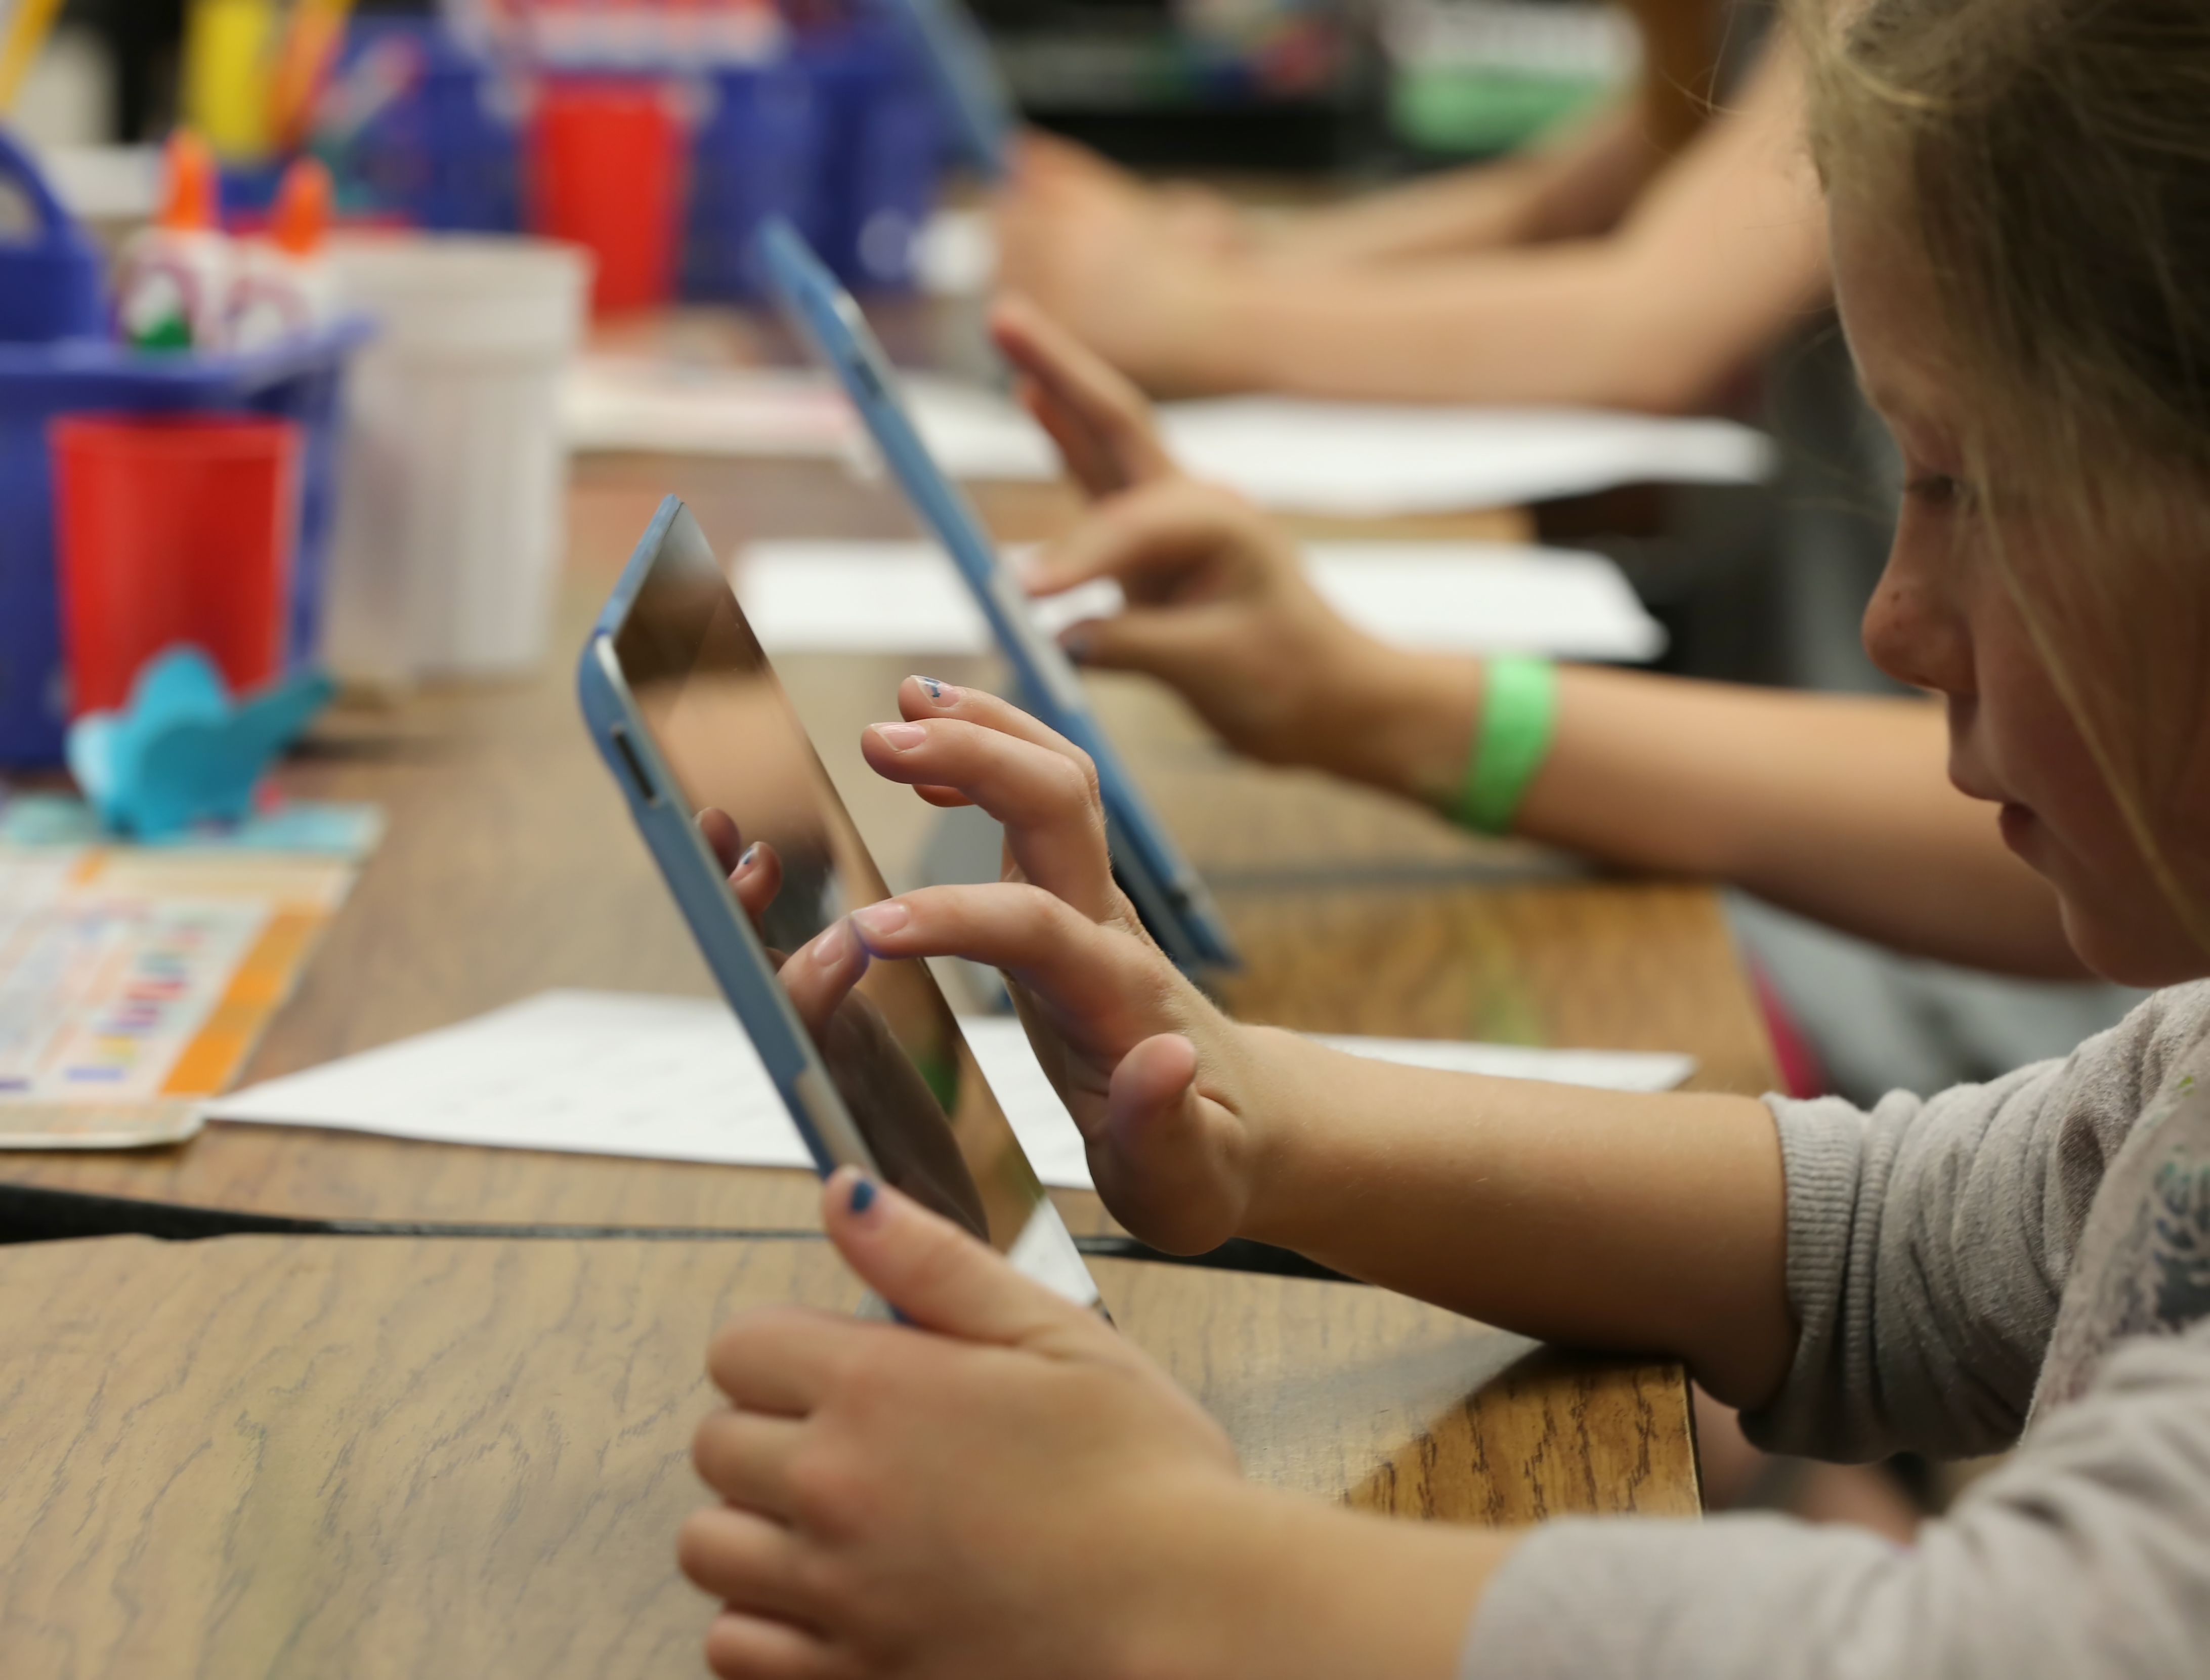 Second graders work on Apple Inc. iPads as part of their classroom work at Park Lane Elementary school, in the Canyons School District, in Sandy, Utah, U.S. on Monday, May 20, 2013.